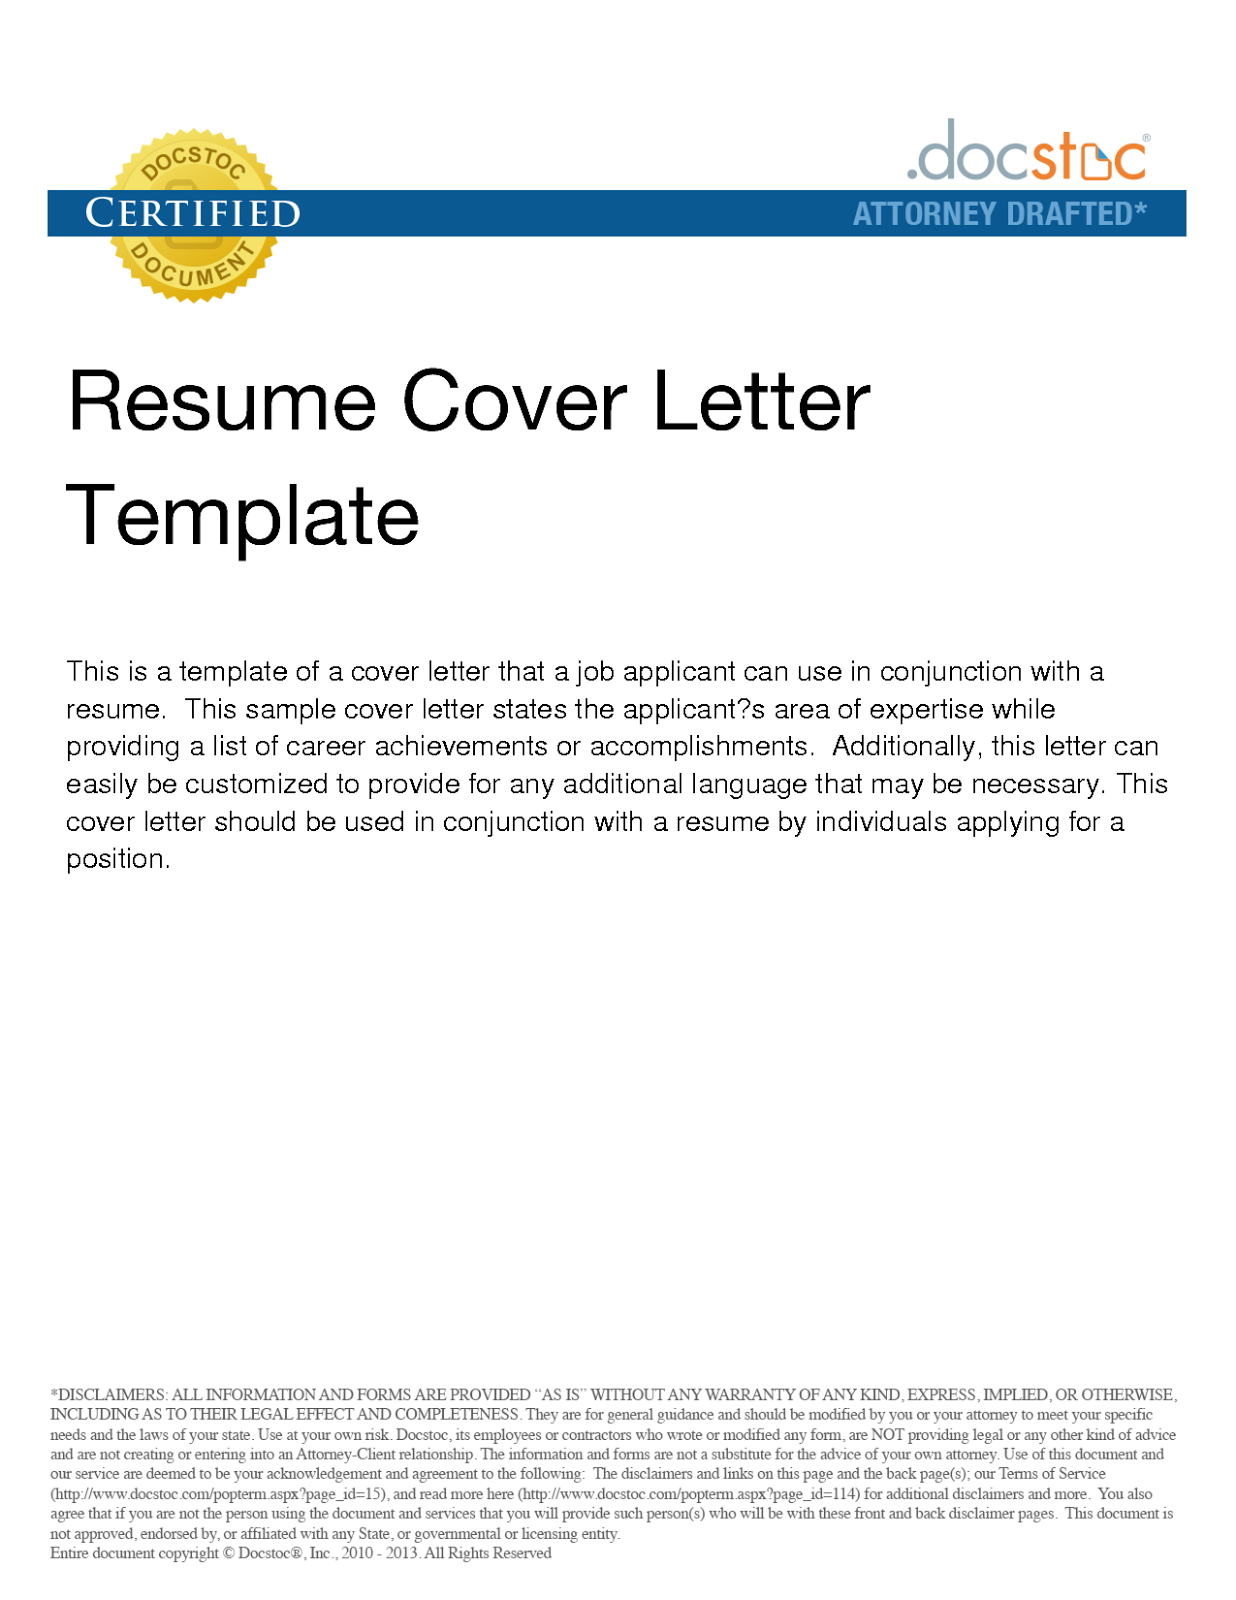 Resume Resume Body Of Email resume body of email cover letter in cv attached samples bookkeeper openings summary essay give you